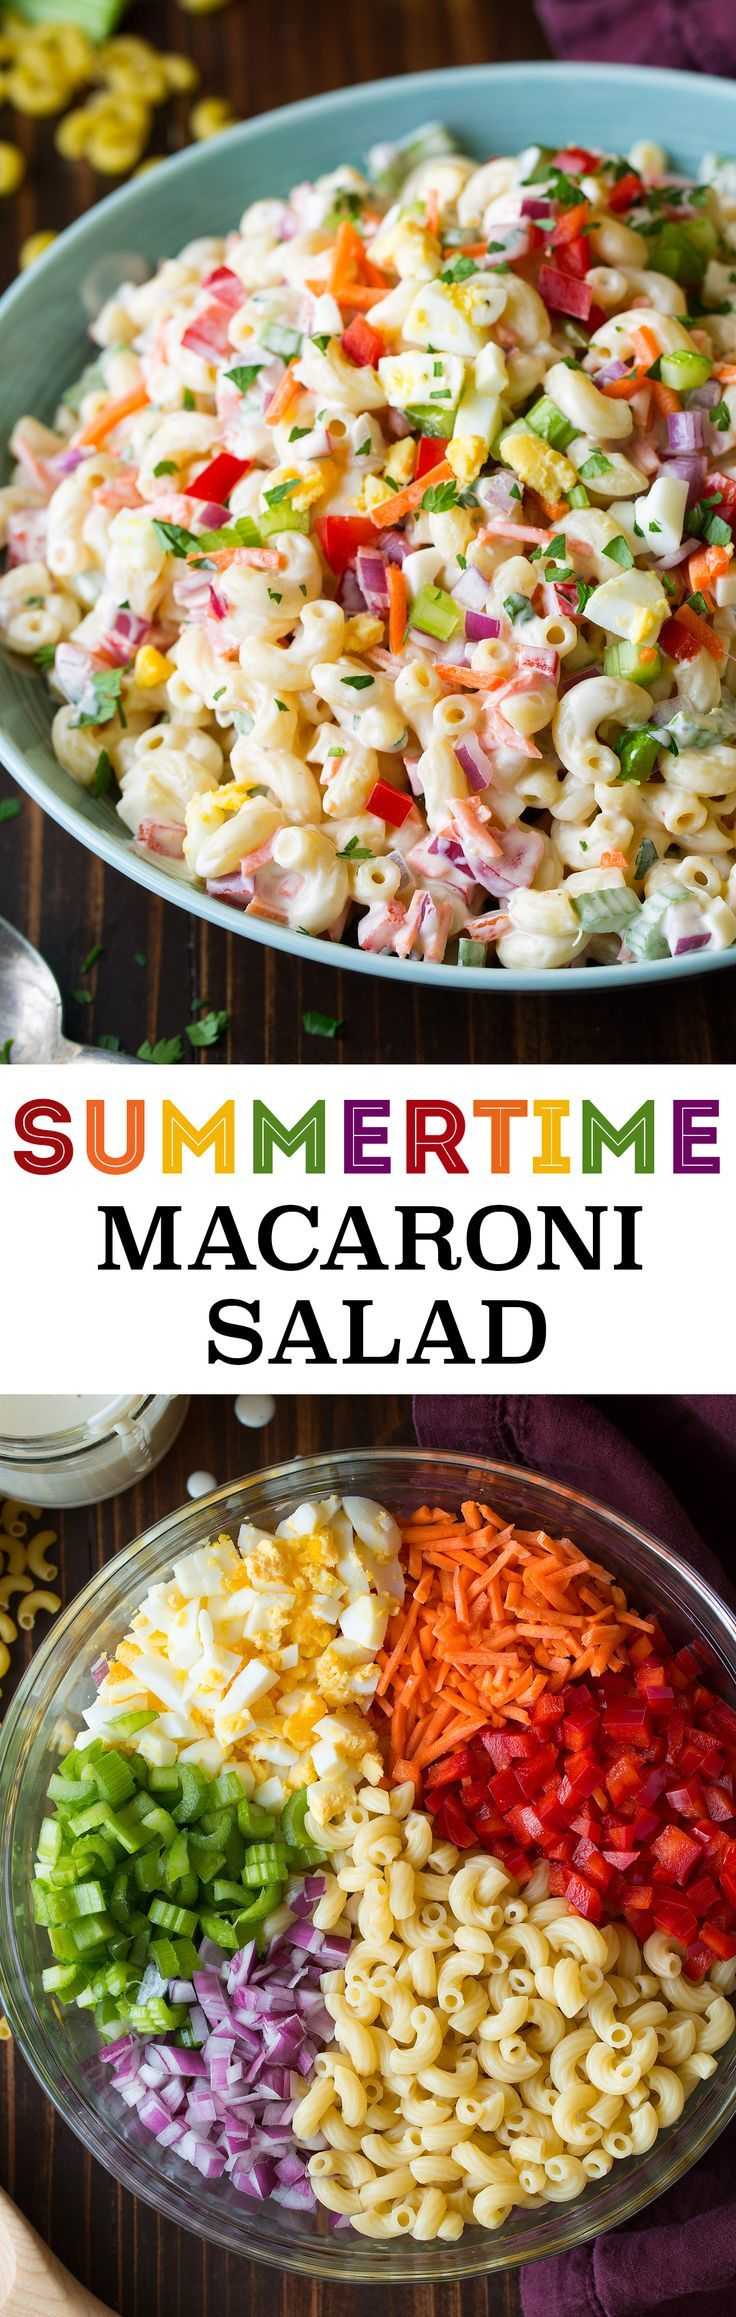 Classic Macaroni Salad - Cooking Classy - maybe omit the onions and replace with peppercinis & cucumbers instead.